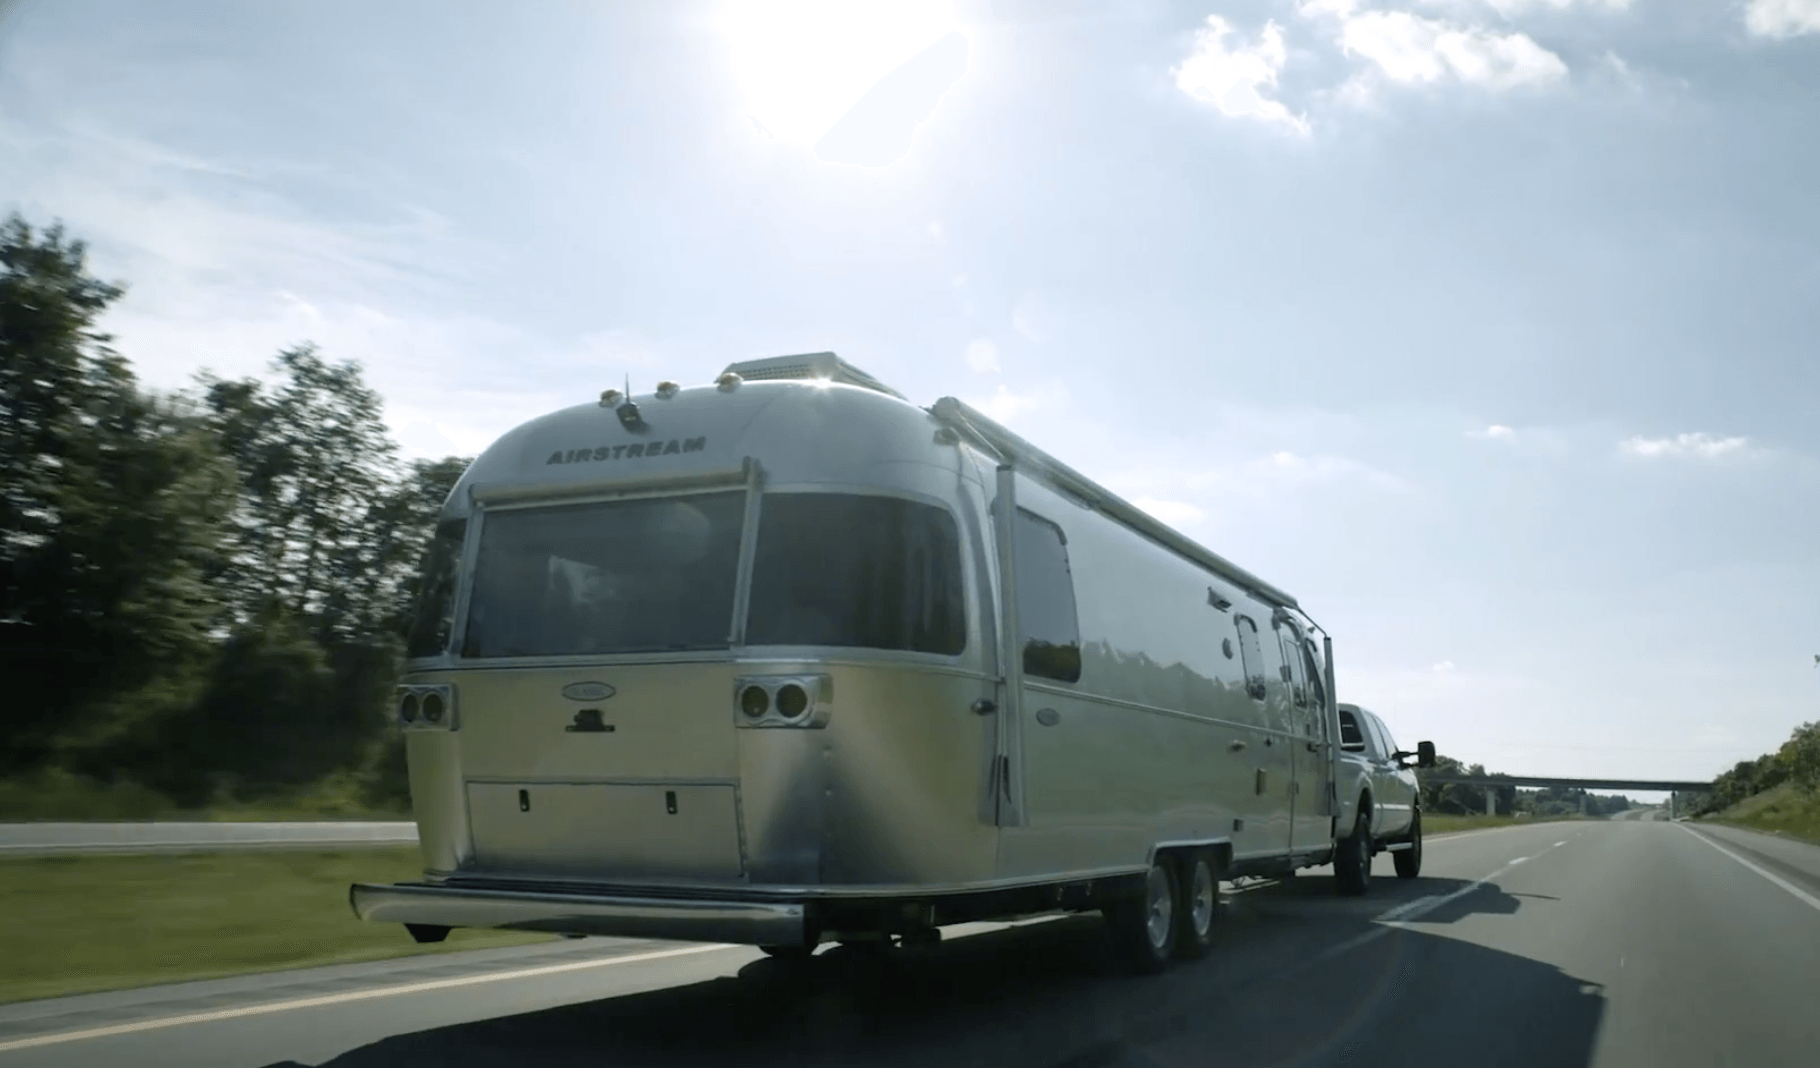 Airstream Travel Trailers: Easy to Tow, Easy to Drive